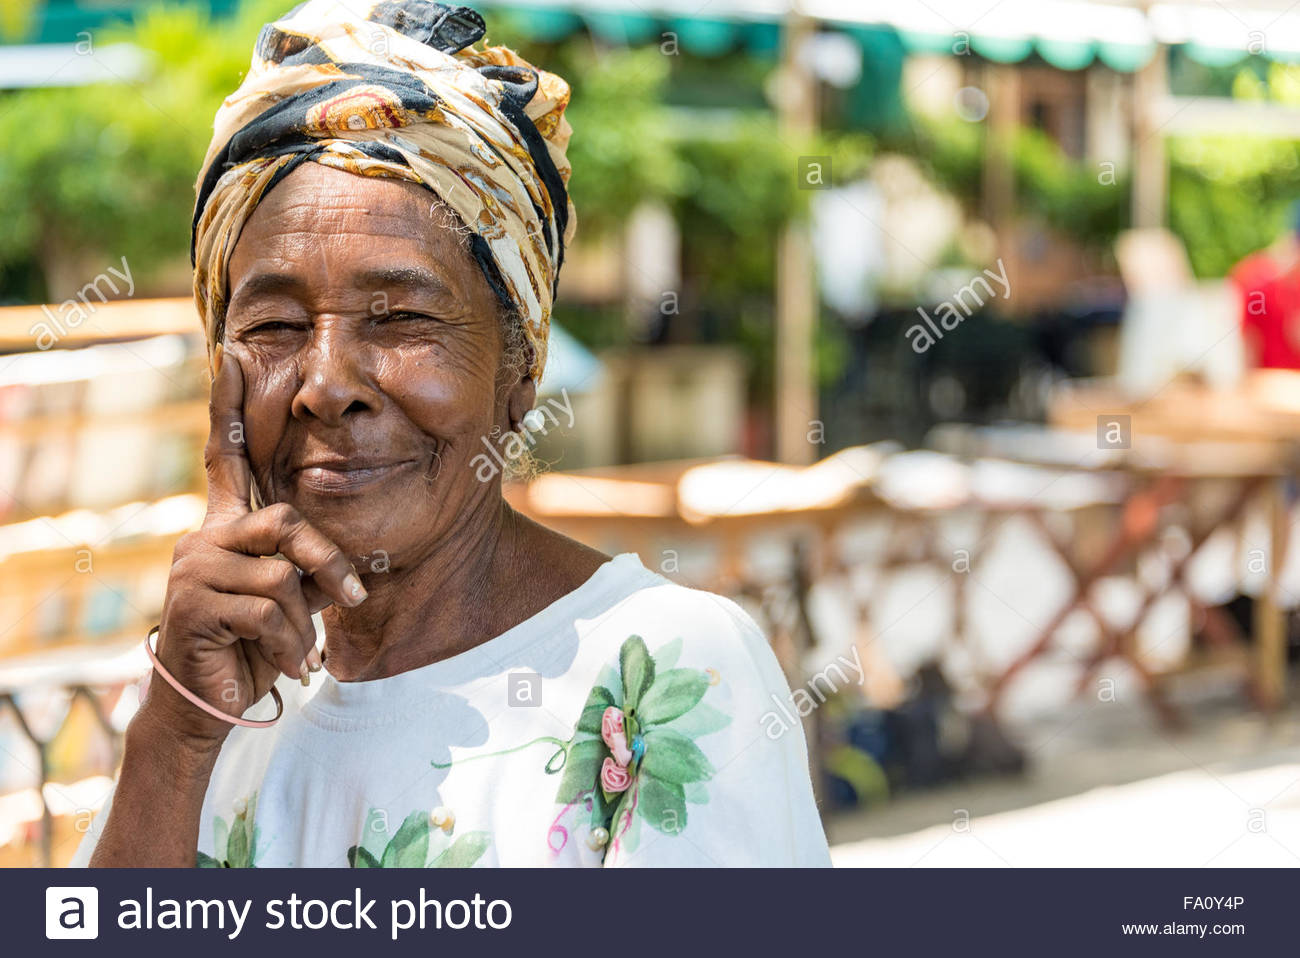 Caribbean People: Cuban Flower Lady Stock Photos & Cuban Flower Lady Stock